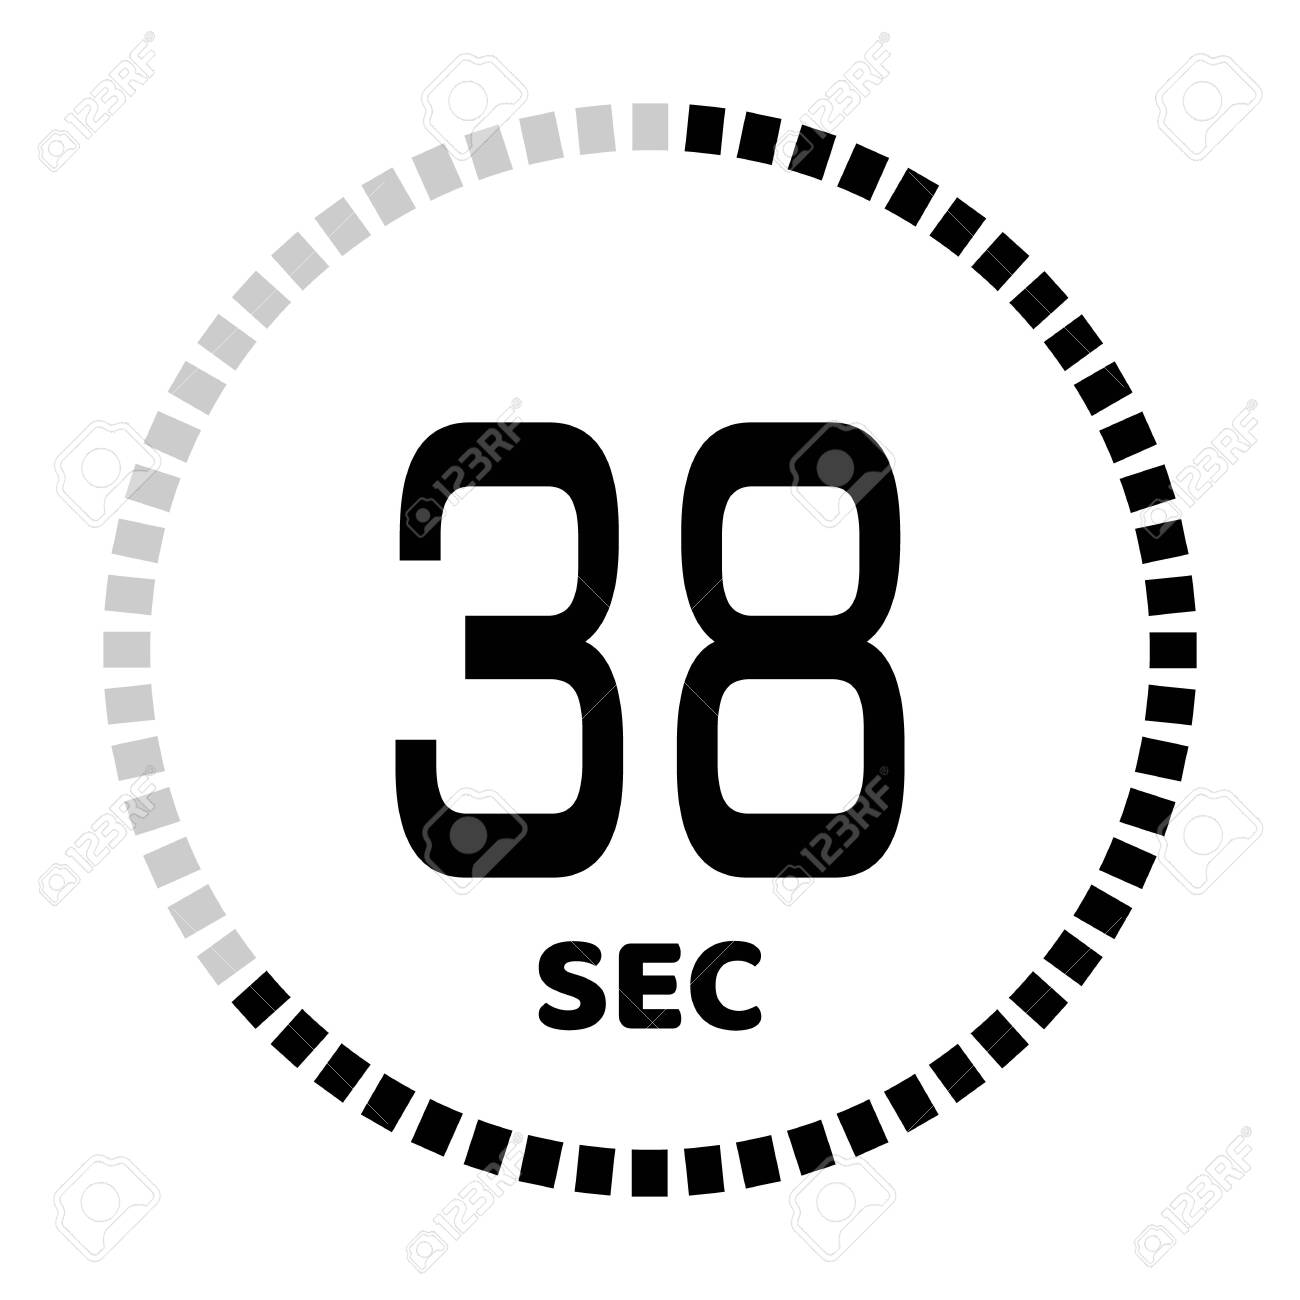 The 38 seconds, stopwatch icon, digital timer. Digital Countdown Timer Vector Icon. Clock and watch, timer. - 127834334